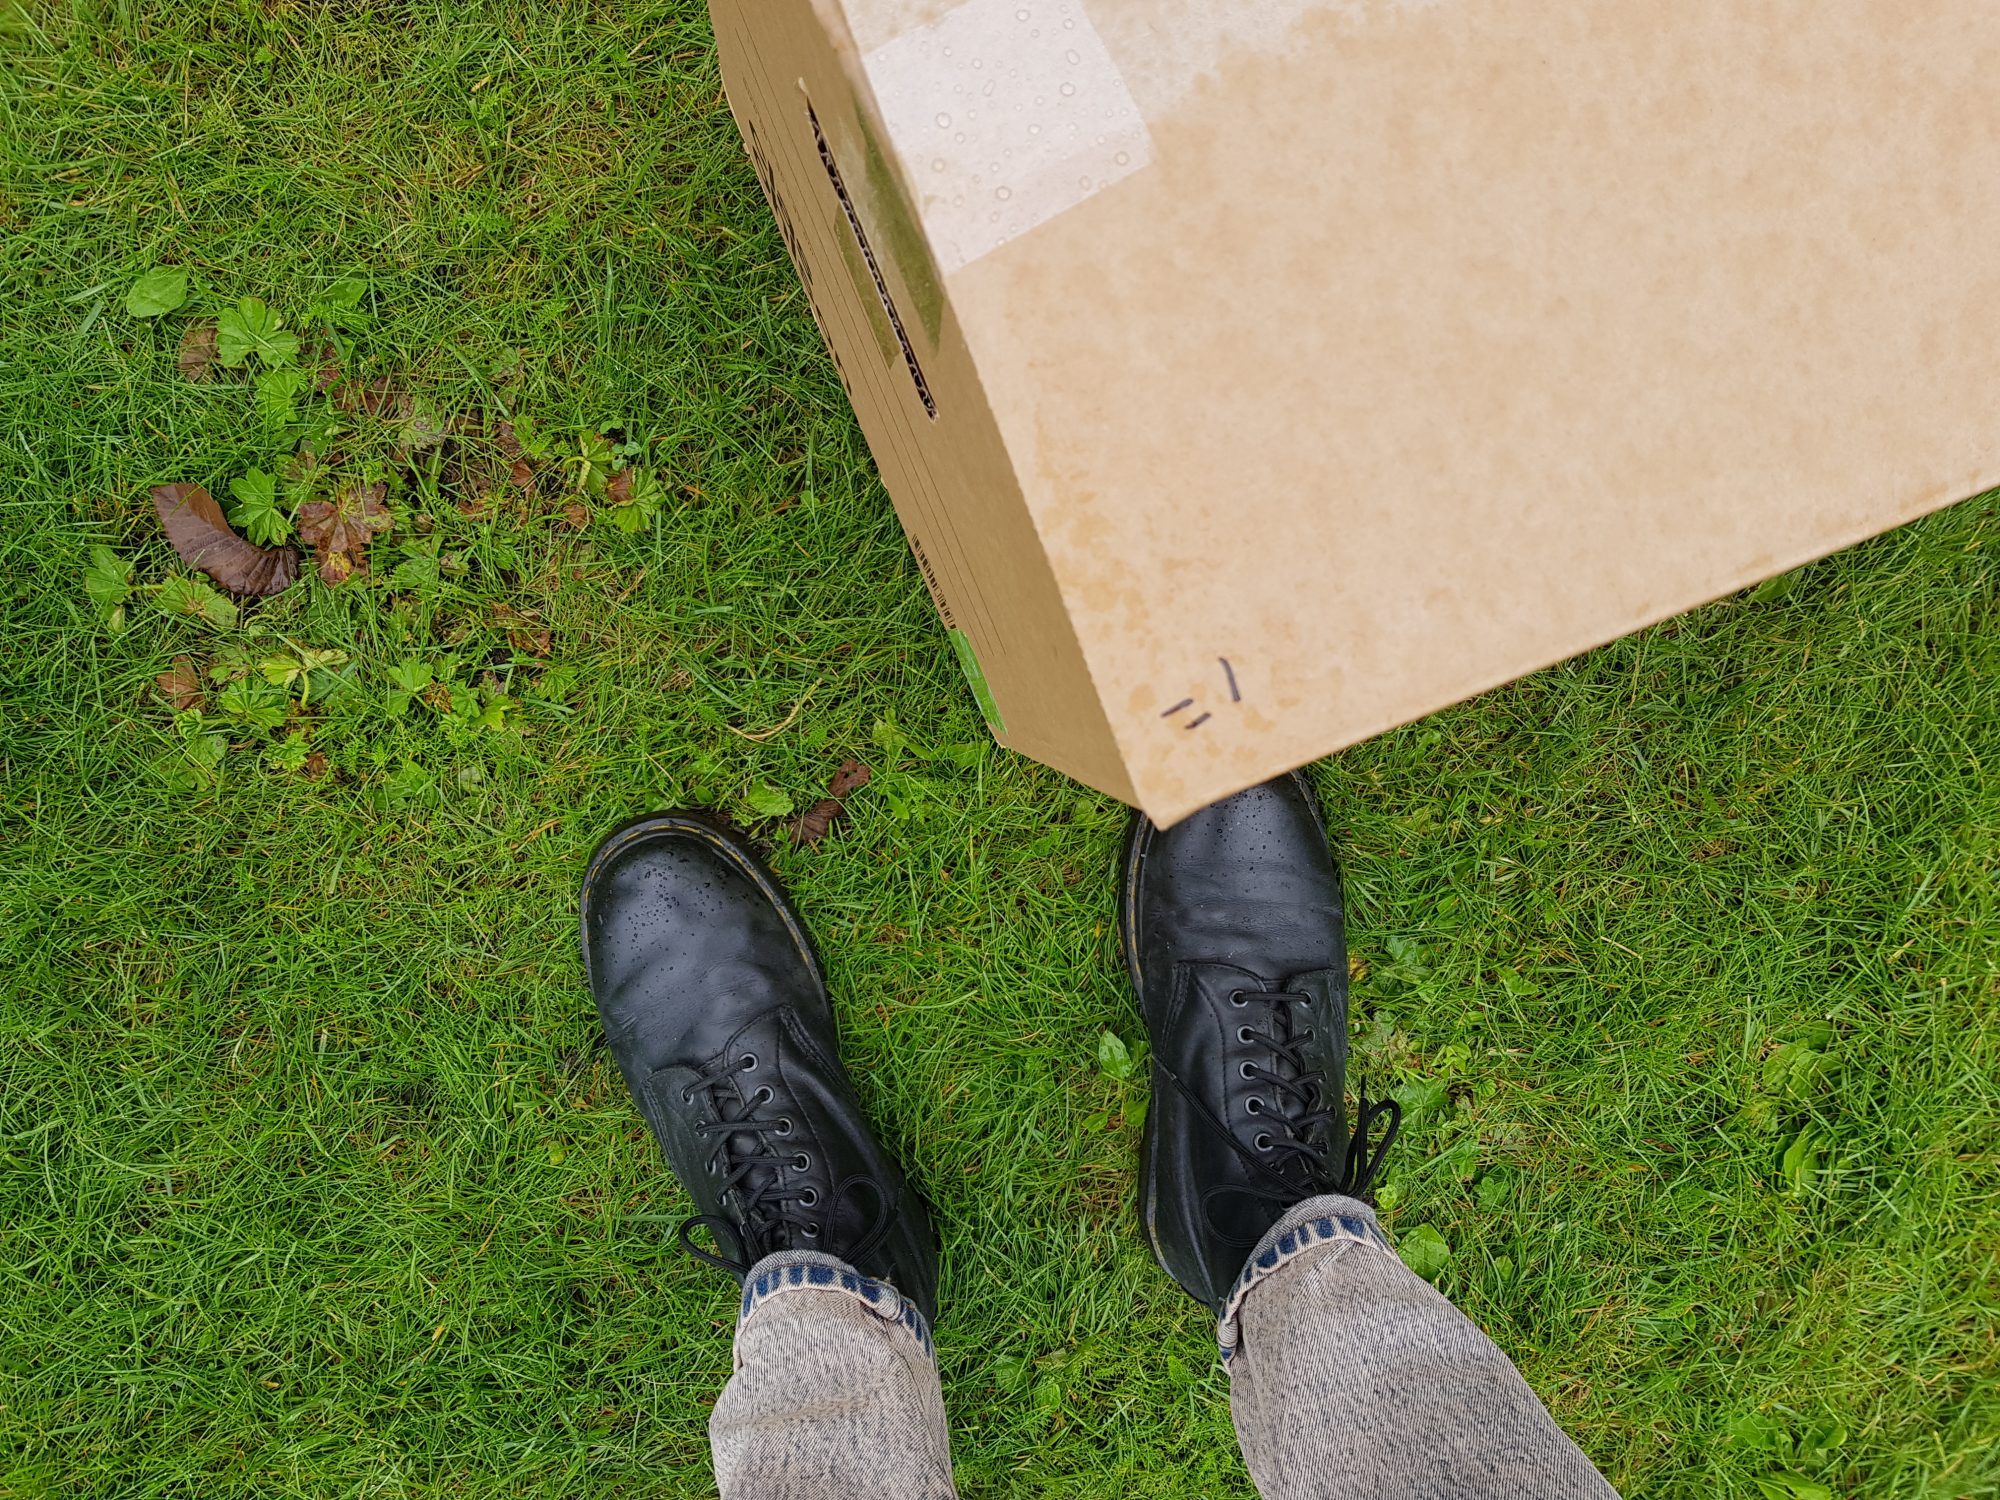 A photo of some legs wearing jeans and Doc Marten boots, stood next to a cardboard box, placed on a grass surface.